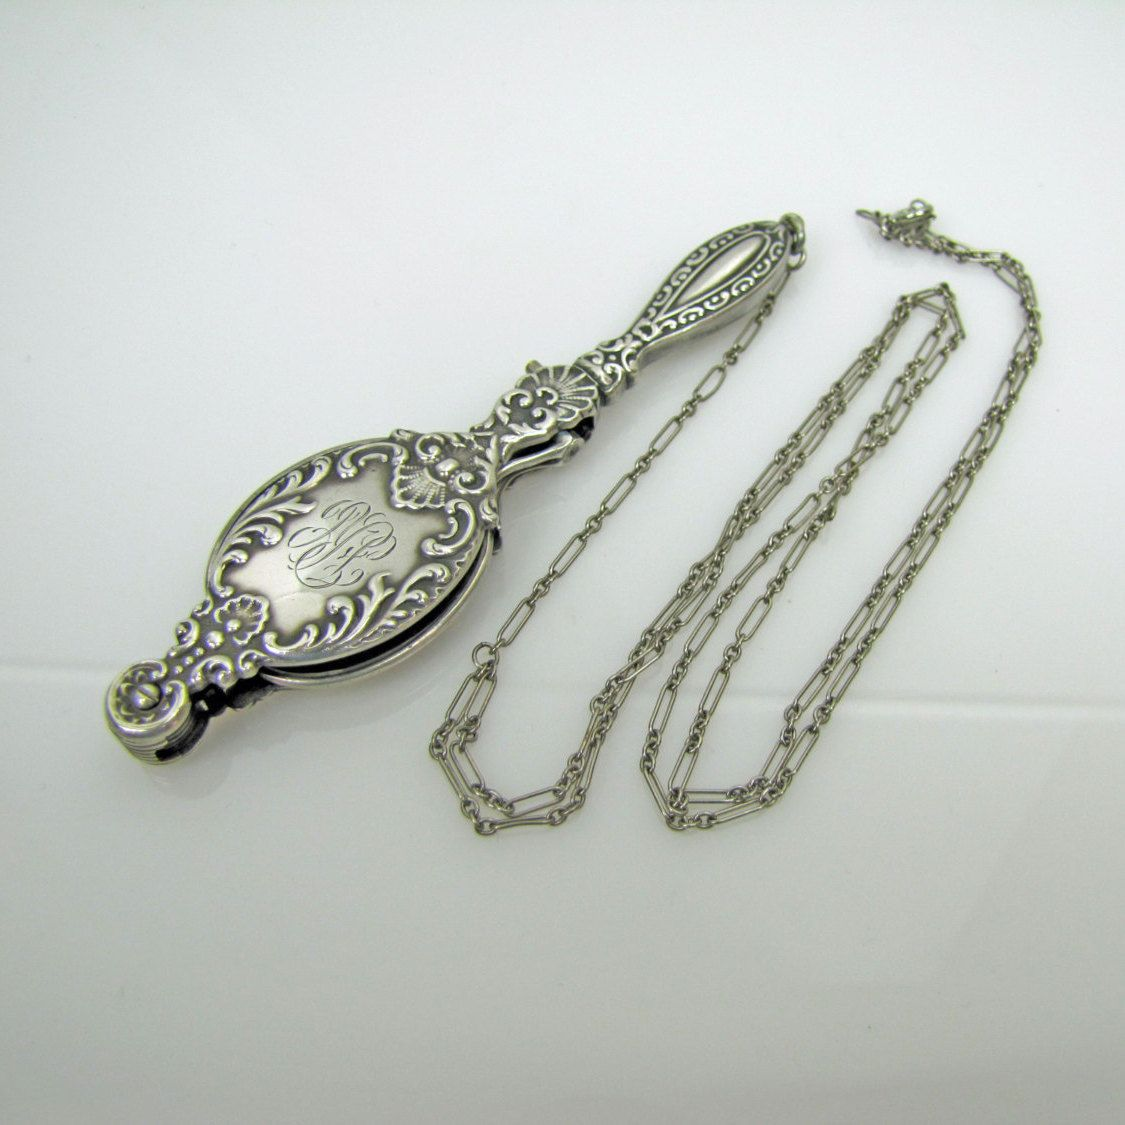 1d51af3bf6a8 Antique Sterling Silver Lorgnette. Art Nouveau Scroll Shell Design. Folding  Victorian Edwardian Reading Eyeglasses With Paper Clip Y Chain by  MercyMadge on ...